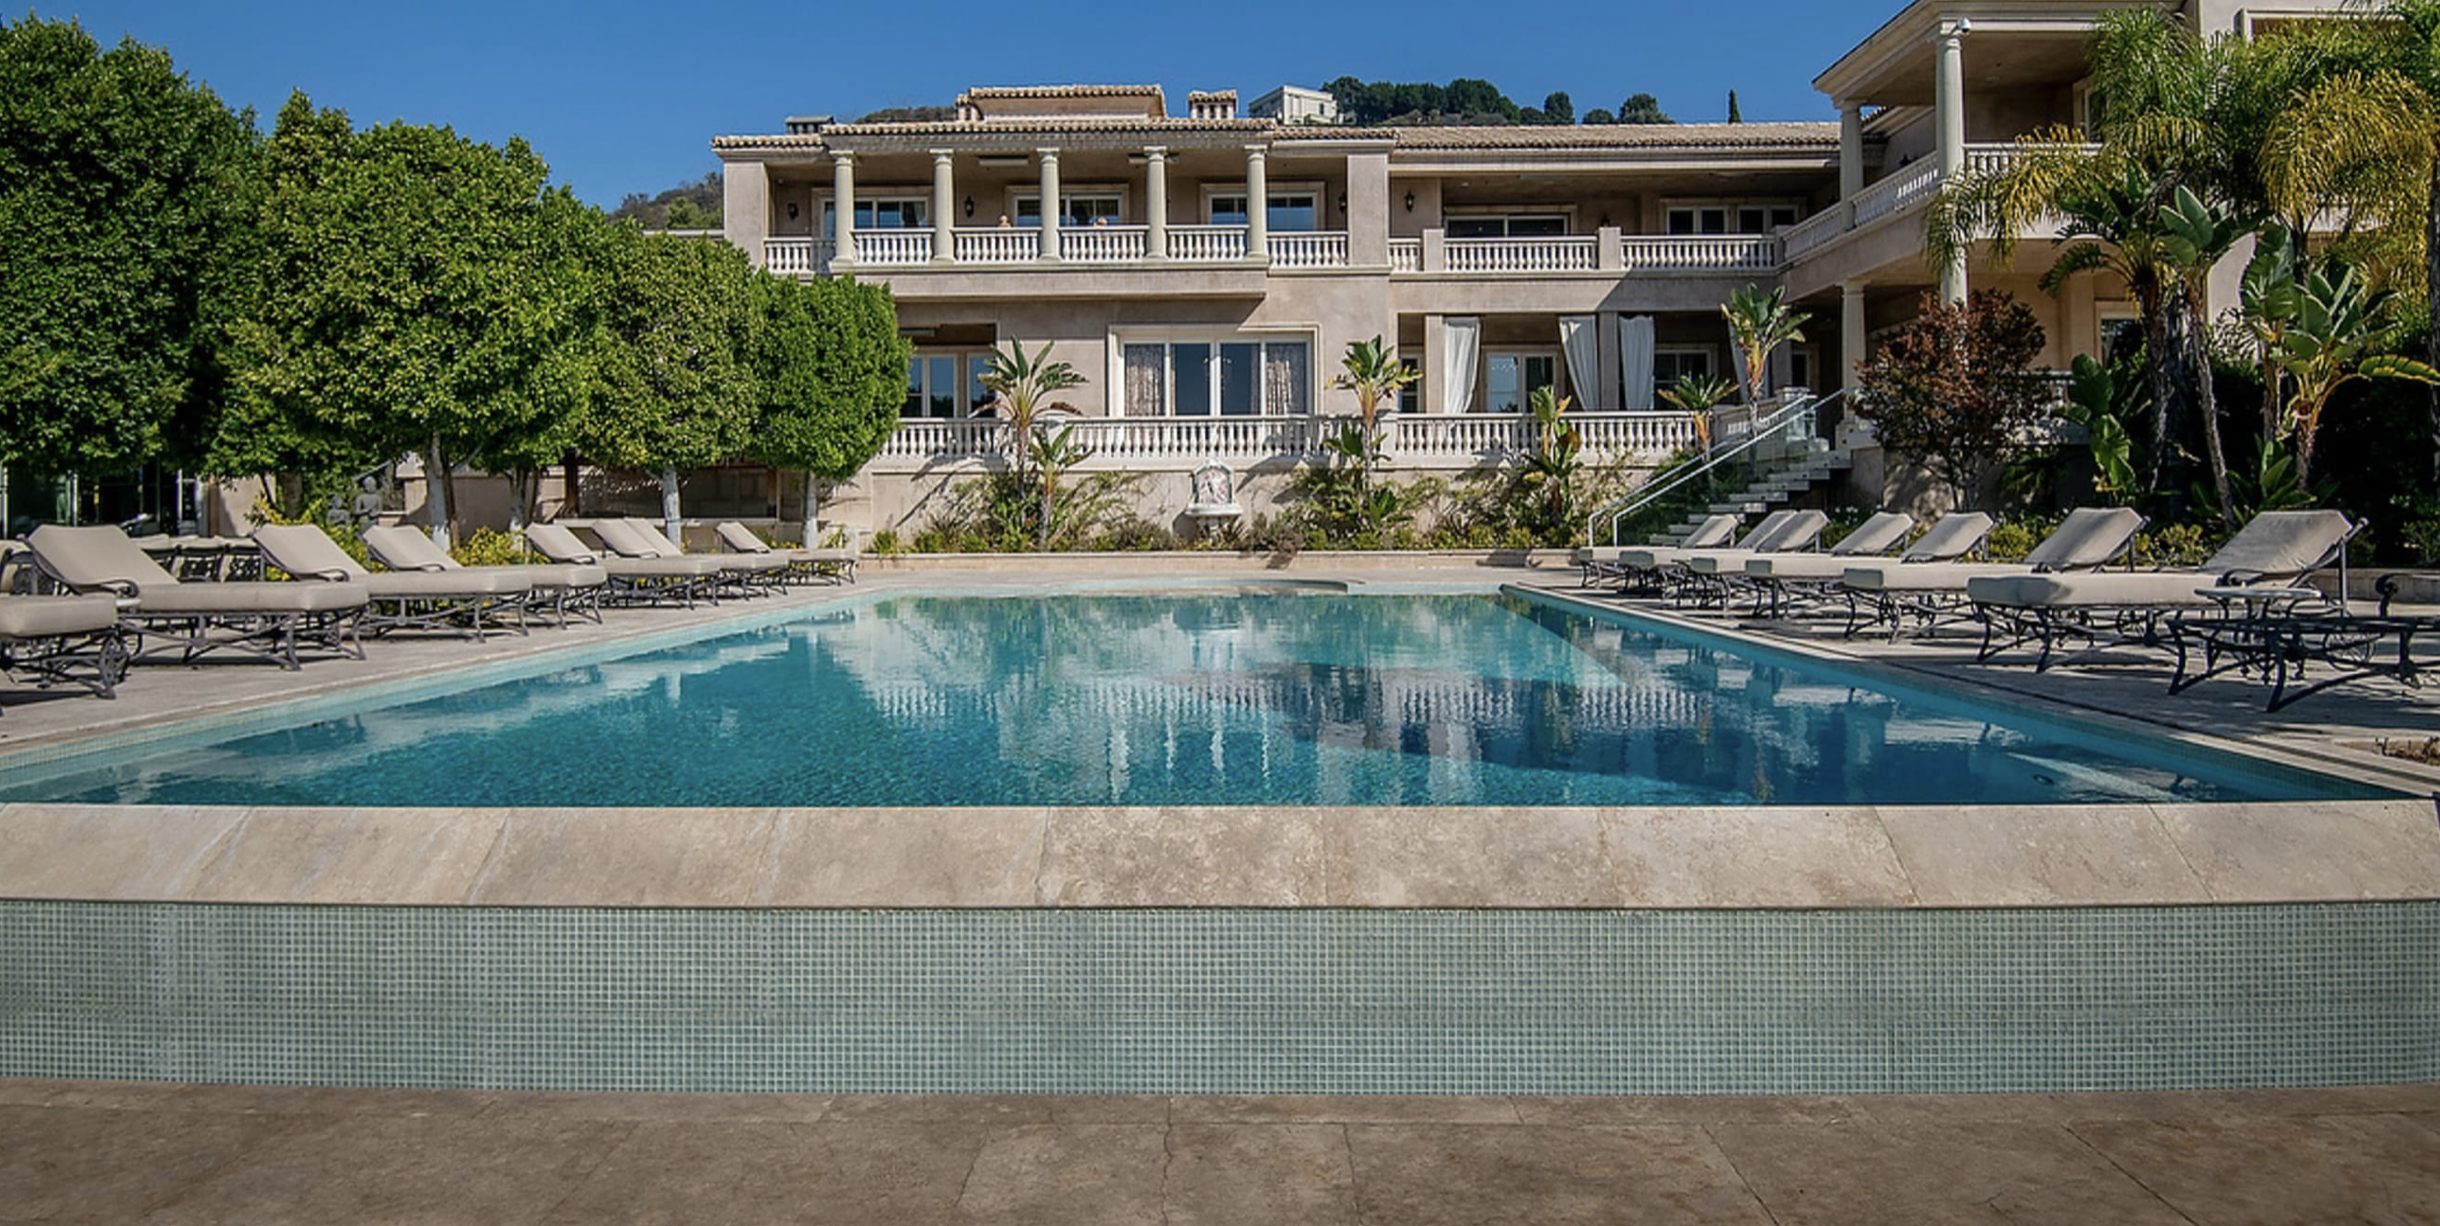 # Ahava Jerusalem, realtor, msl, property portal, real estate, property for sale, home, house for sale, home, homes for sale, house for rent, luxury, California, Beverly Hills, luxury palazzo di amore, swimming pool